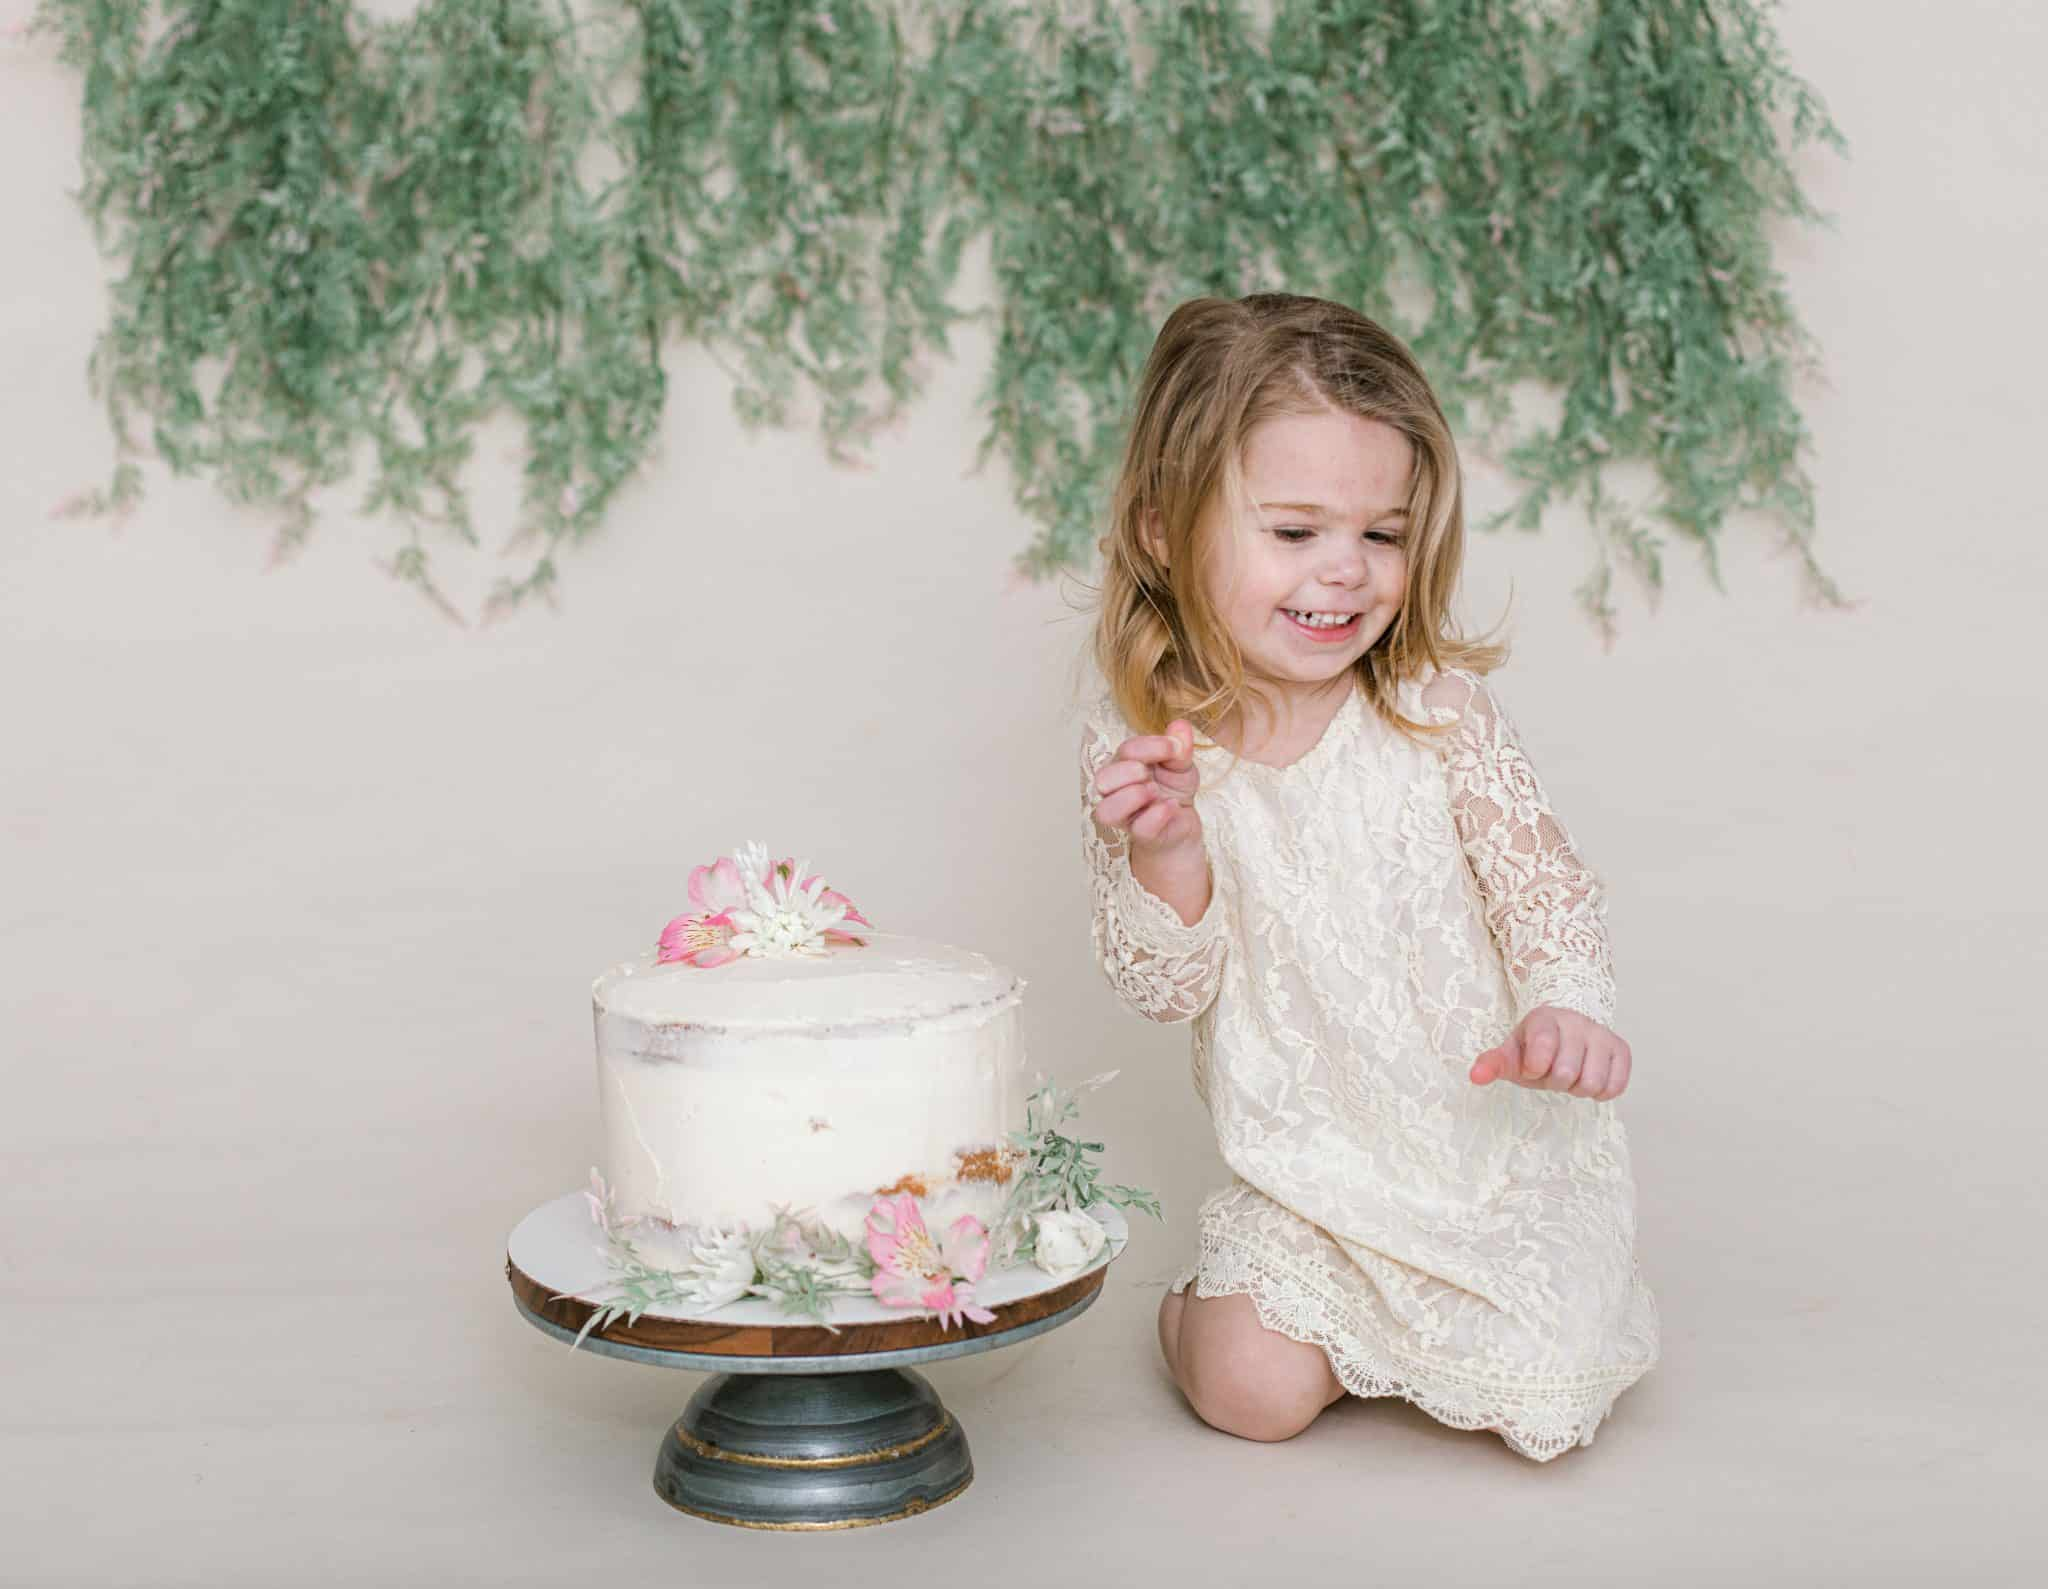 little girl laughing looking down, white cake, green garland, and white dress